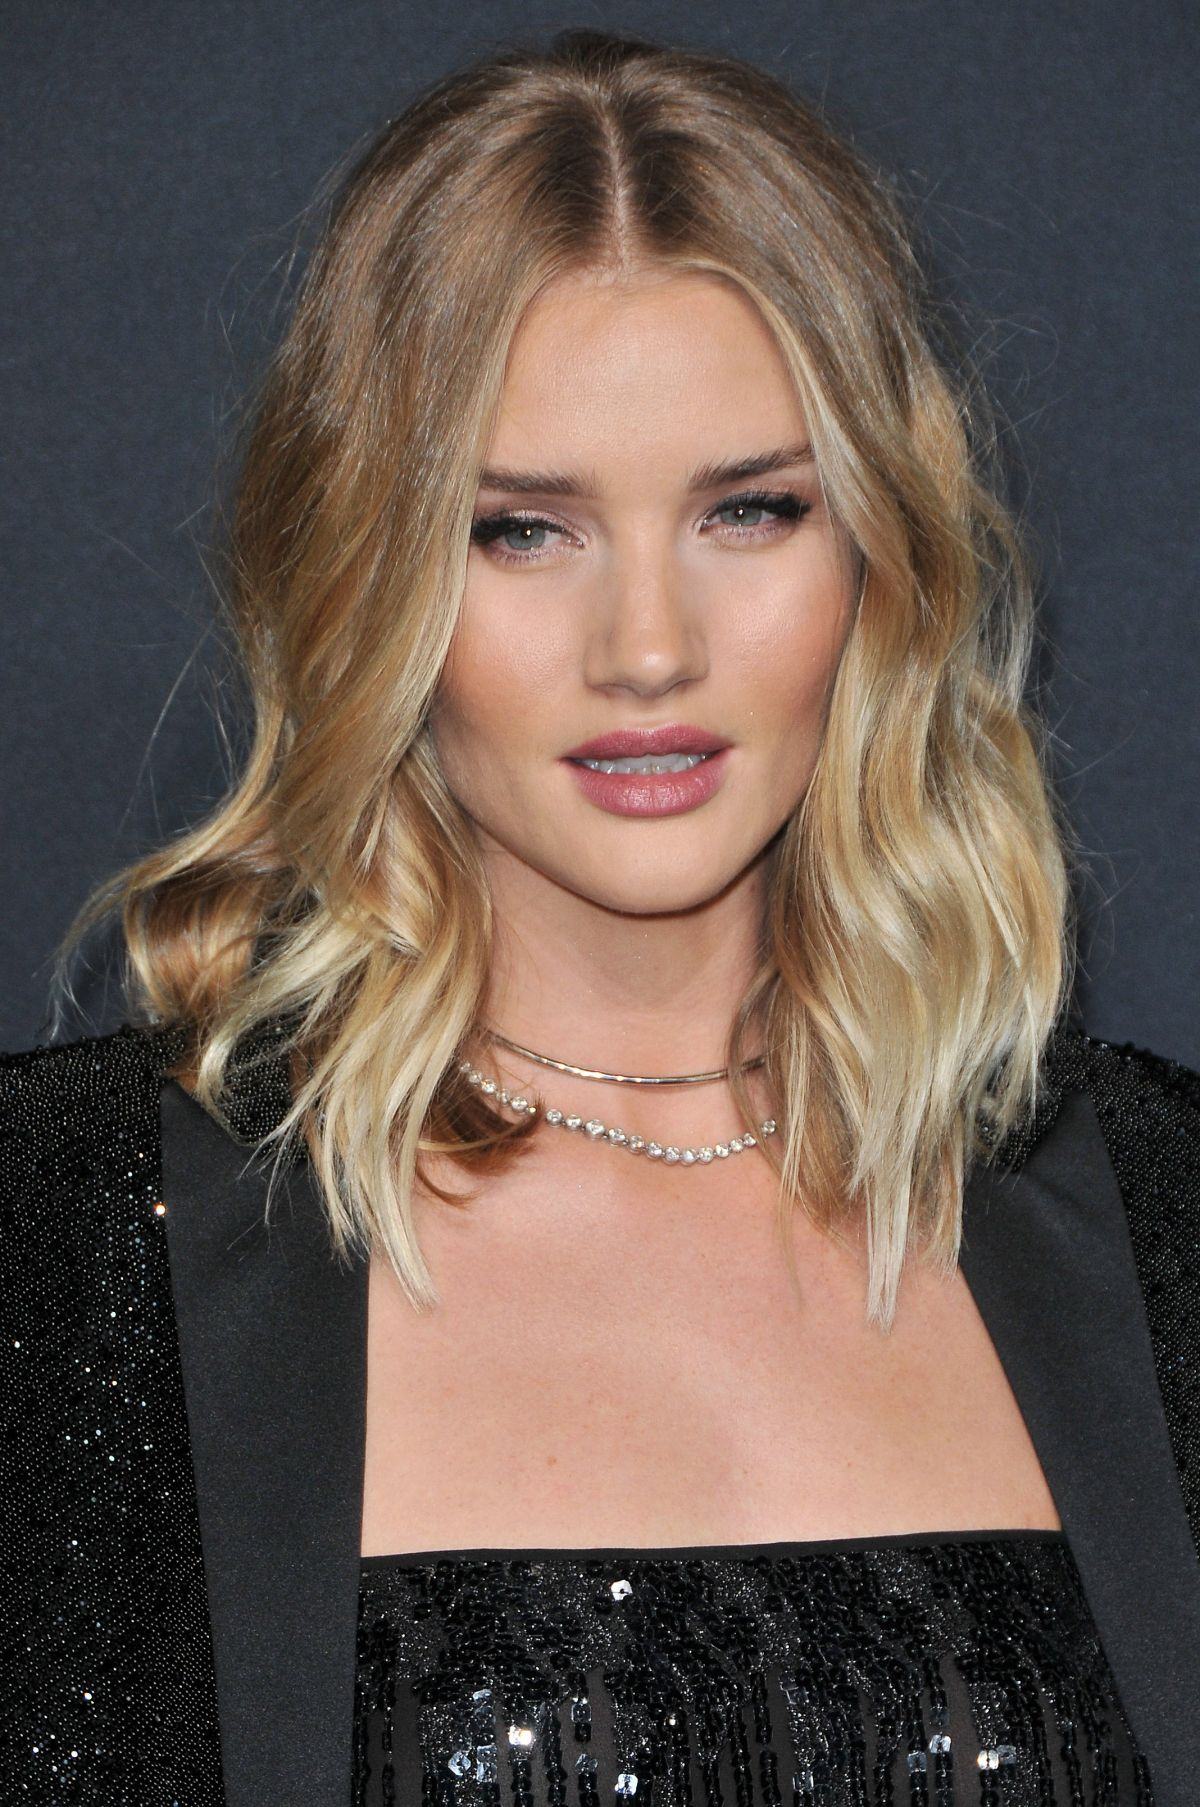 ROSIE HUNTINGTON-WHITELEY at Saint Laurent Fashion Show in ... Rosie Huntington Whiteley